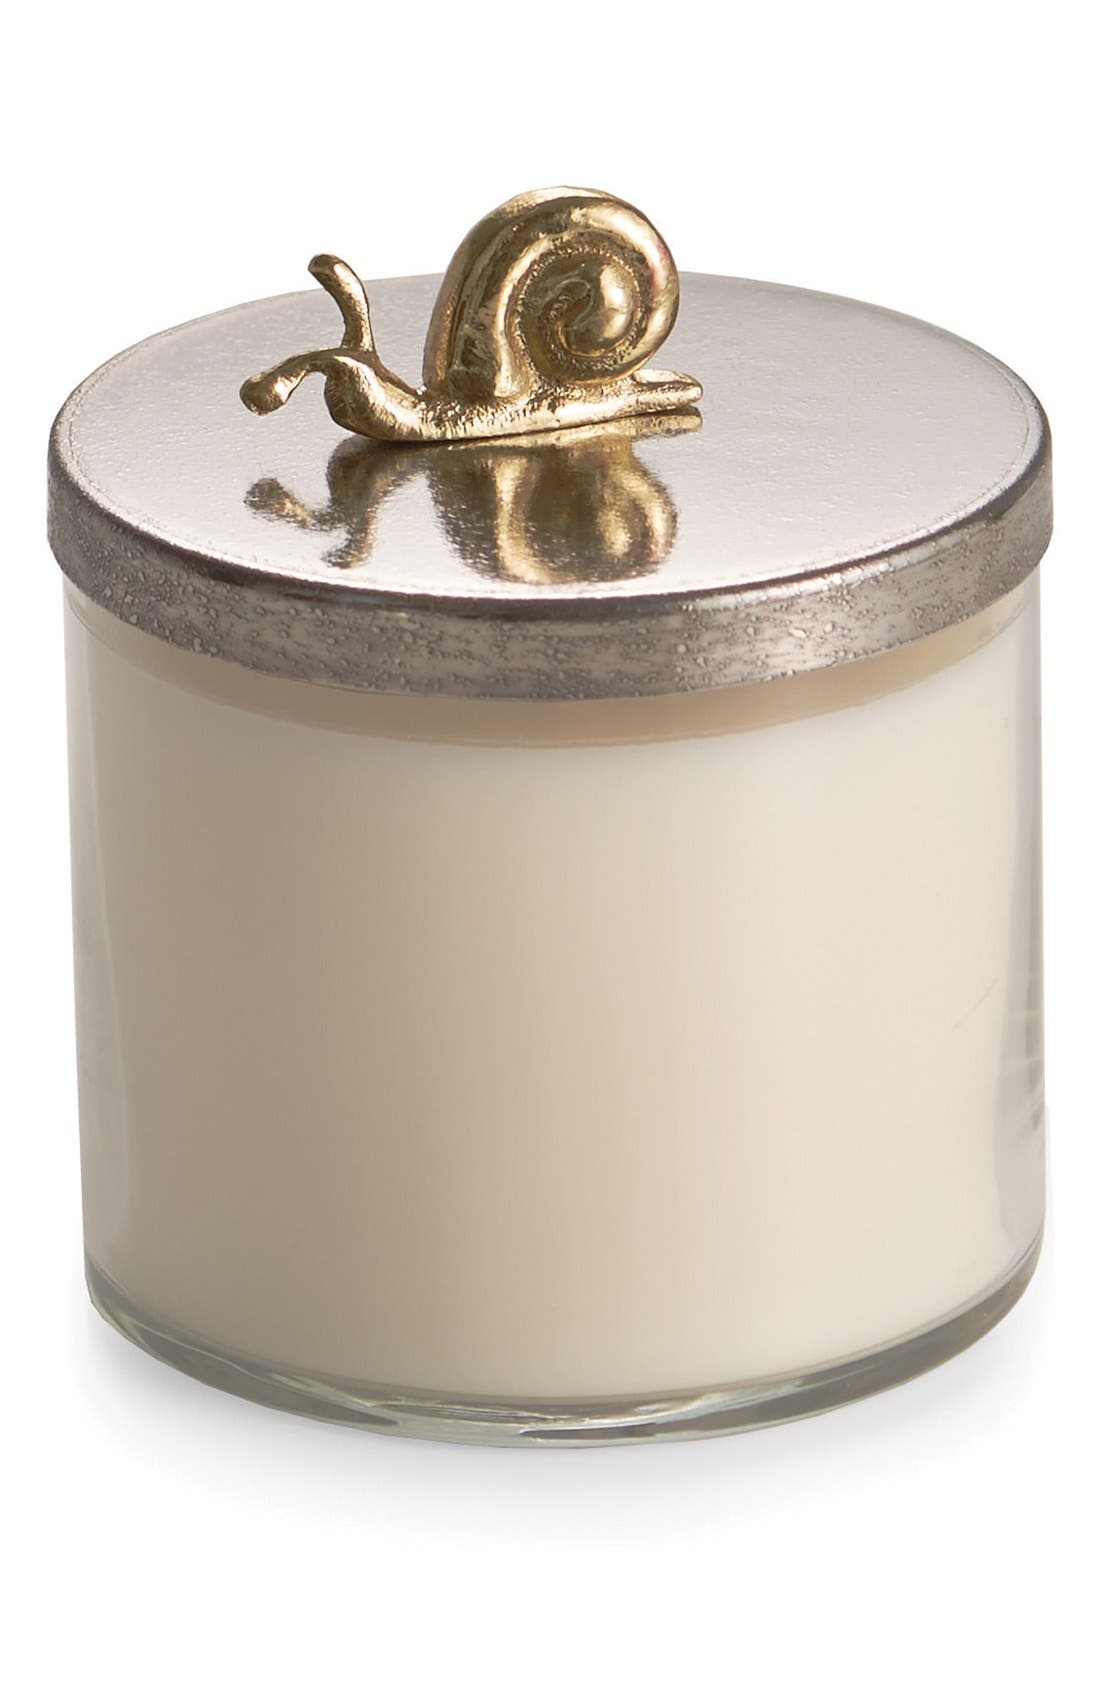 'Enchanted Garden' Soy Wax Candle,                         Main,                         color, Stainless Steel